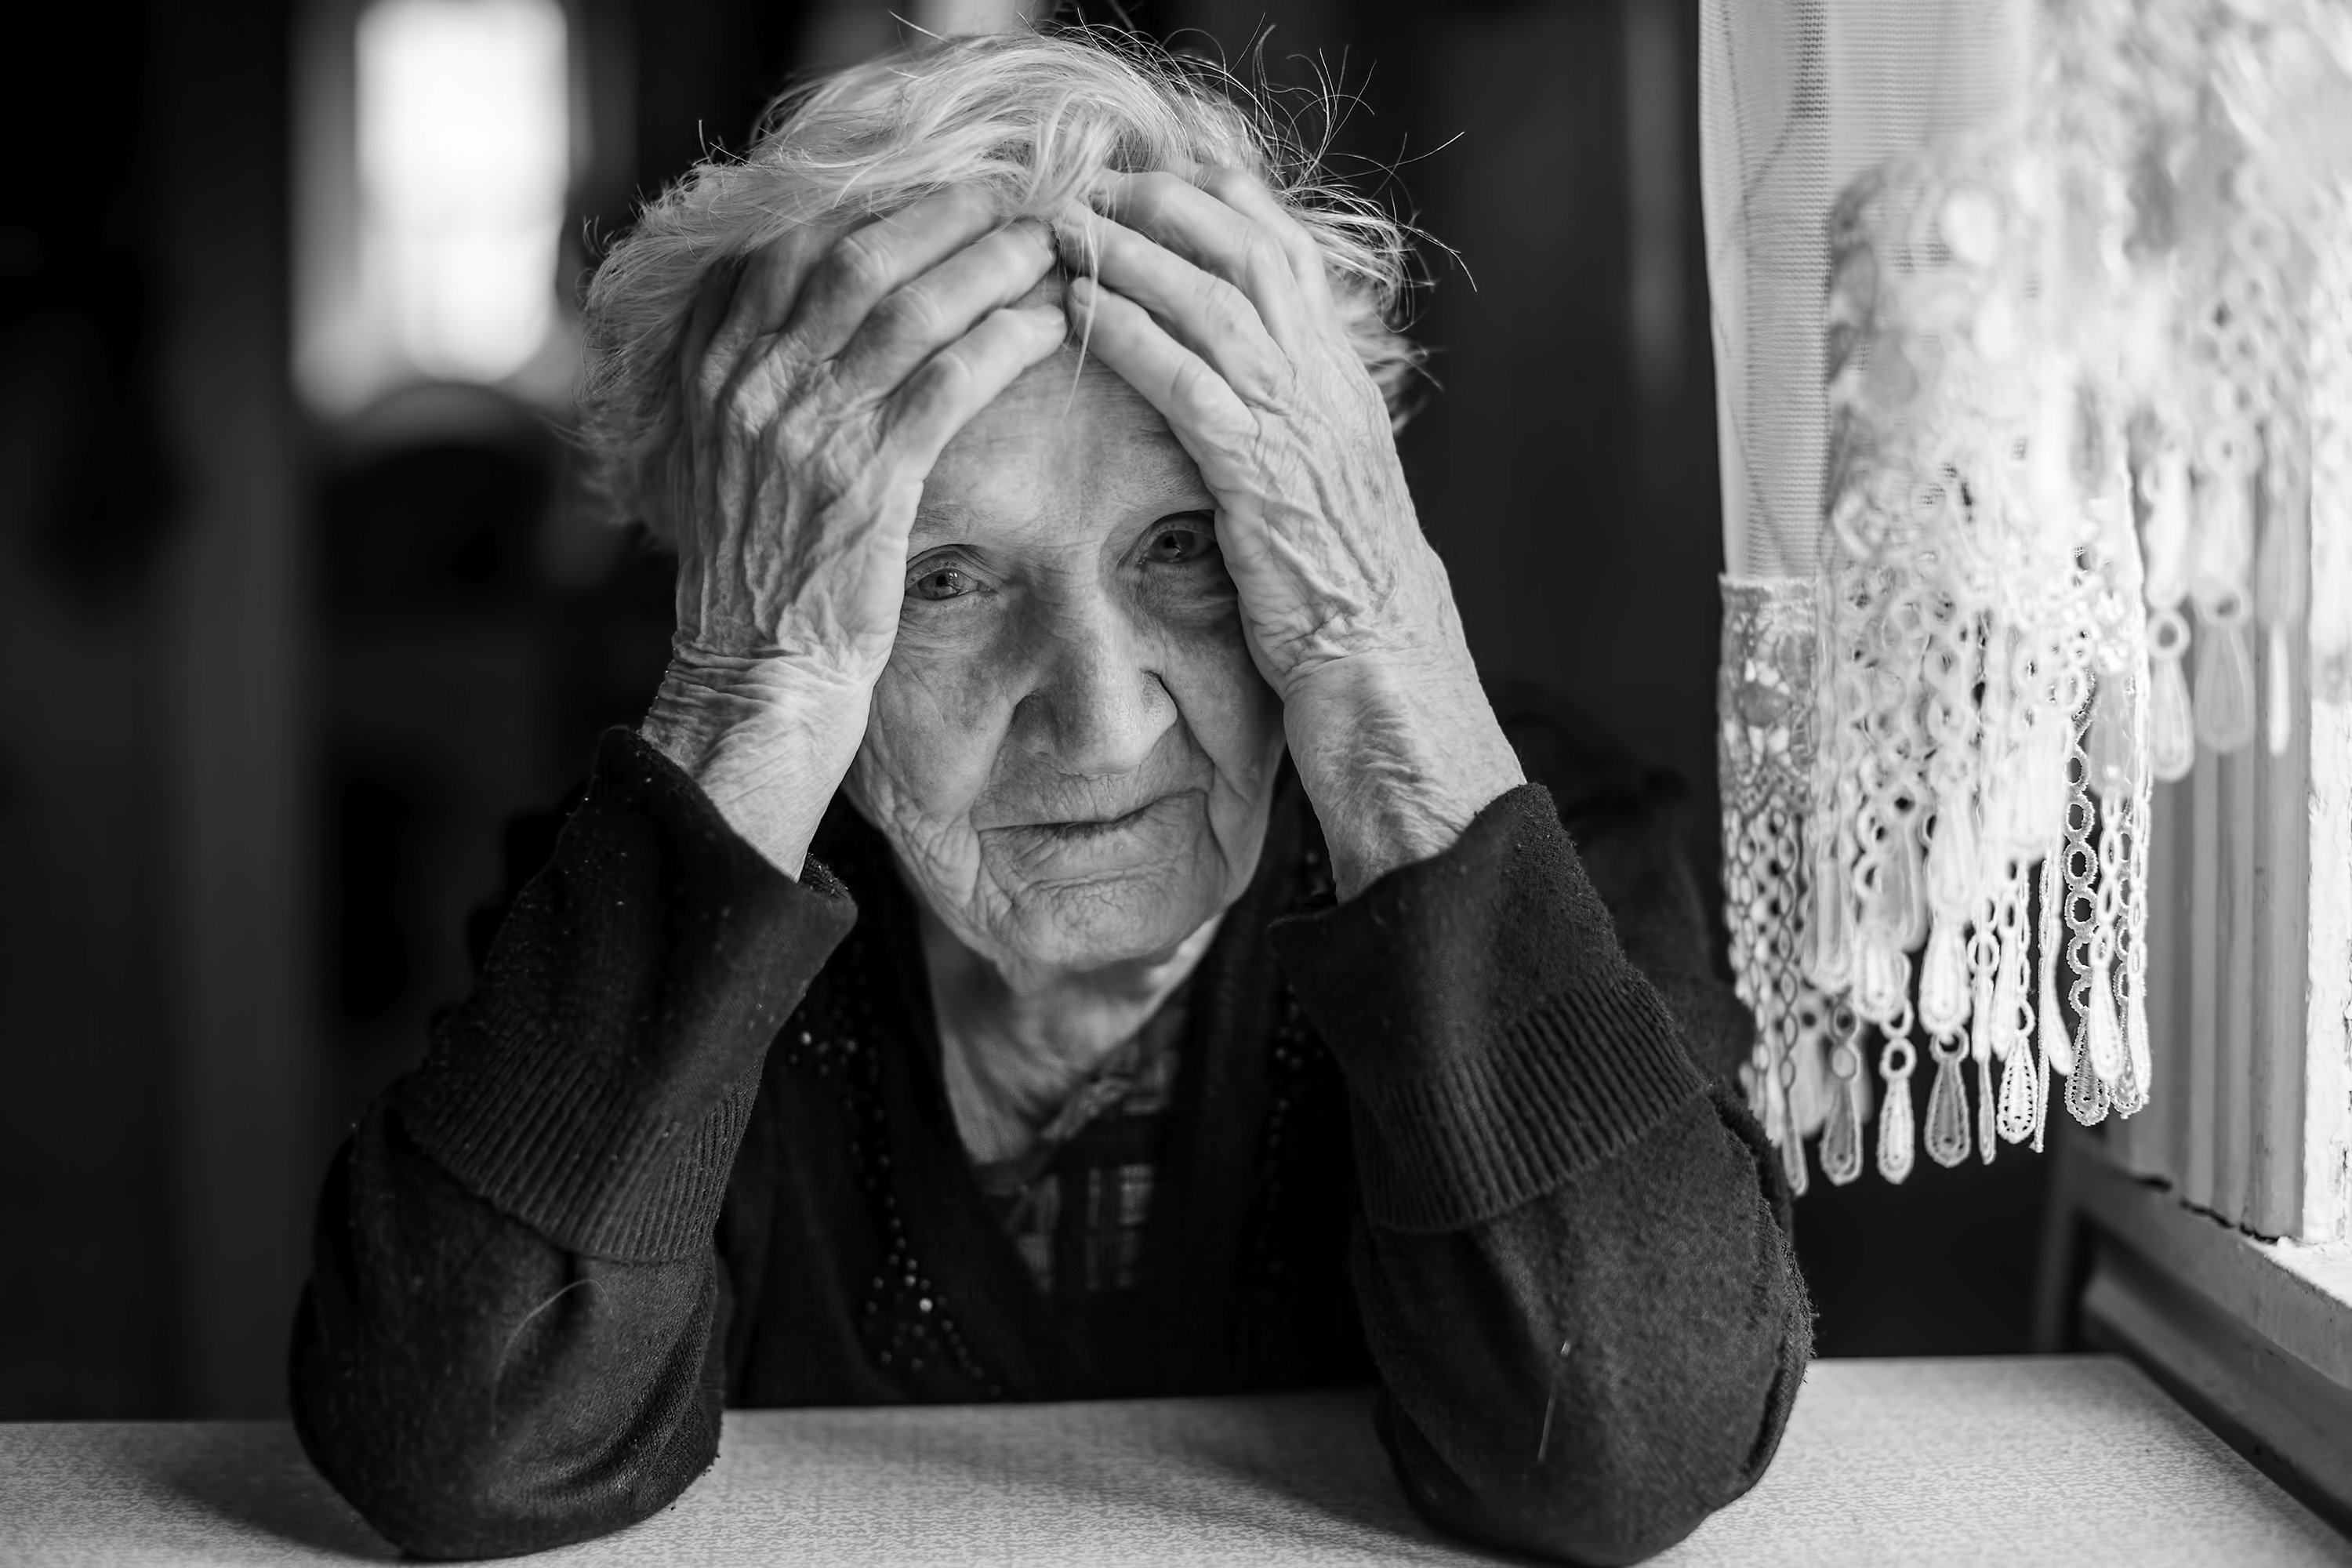 Cataracts and depression